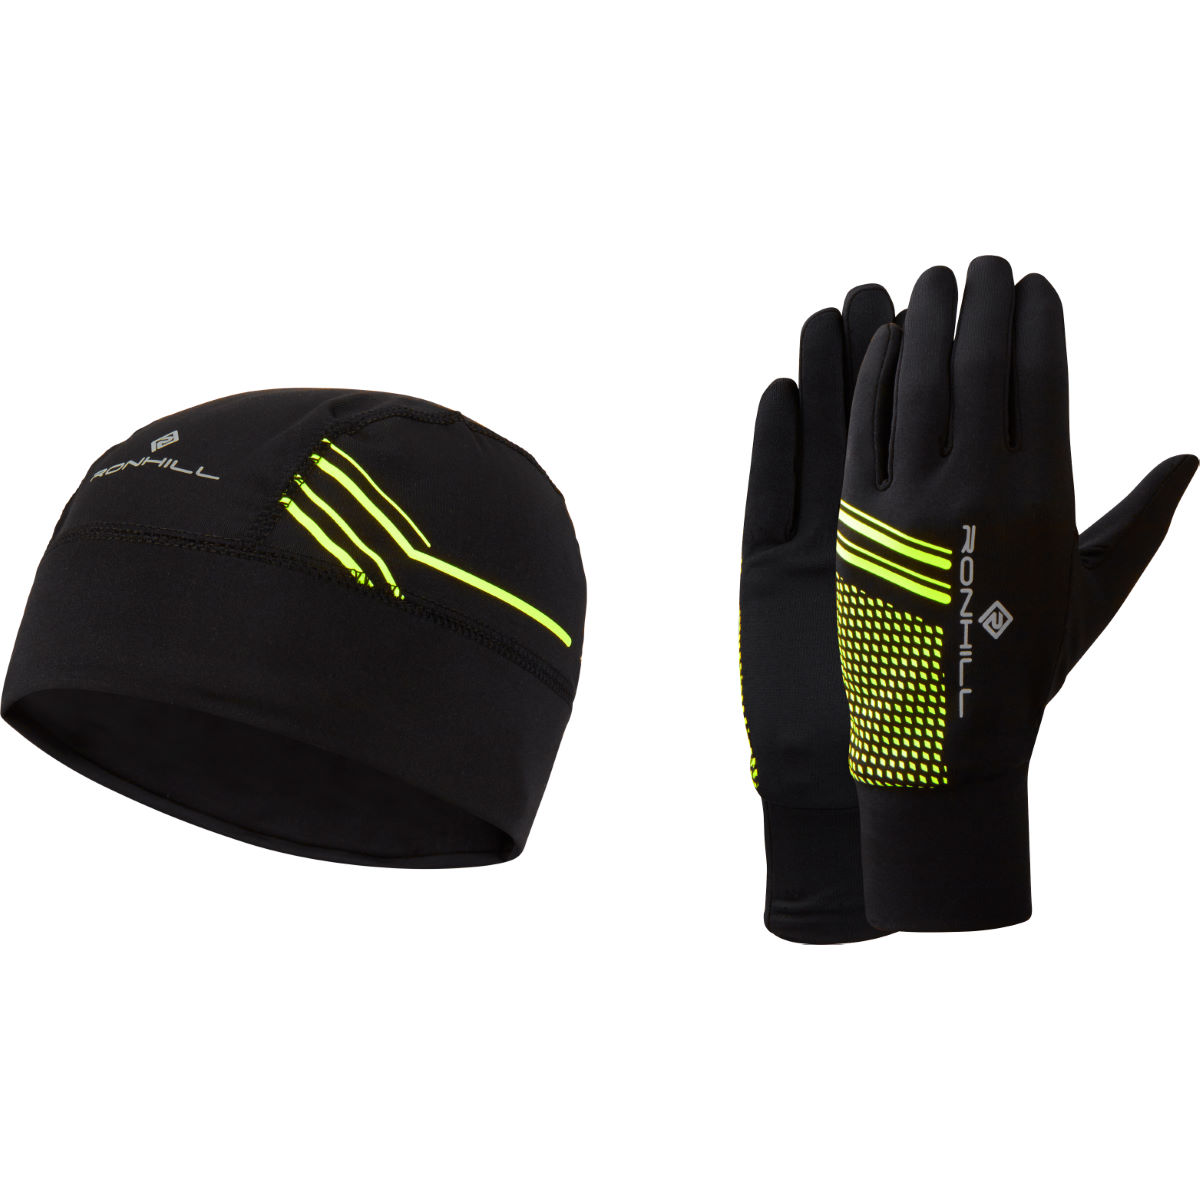 Ronhill Beanie And Glove Set - S/m Black/fluo Yellow  Beanies